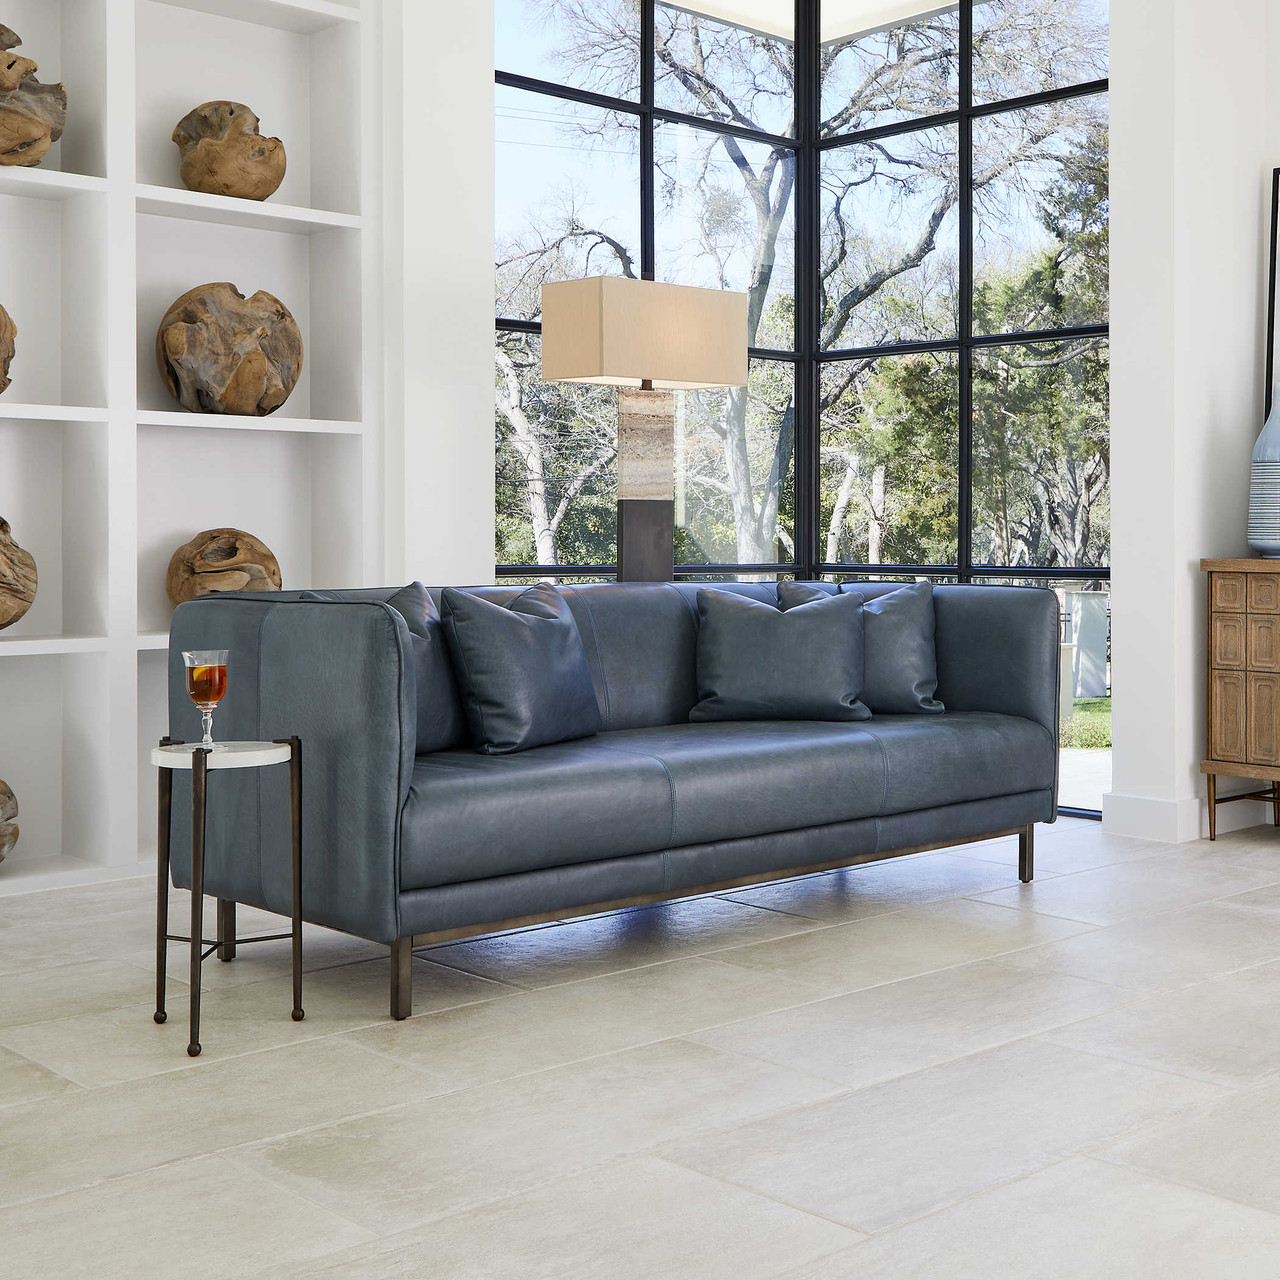 Tindra Leather Sofa By Uttermost Maison Living